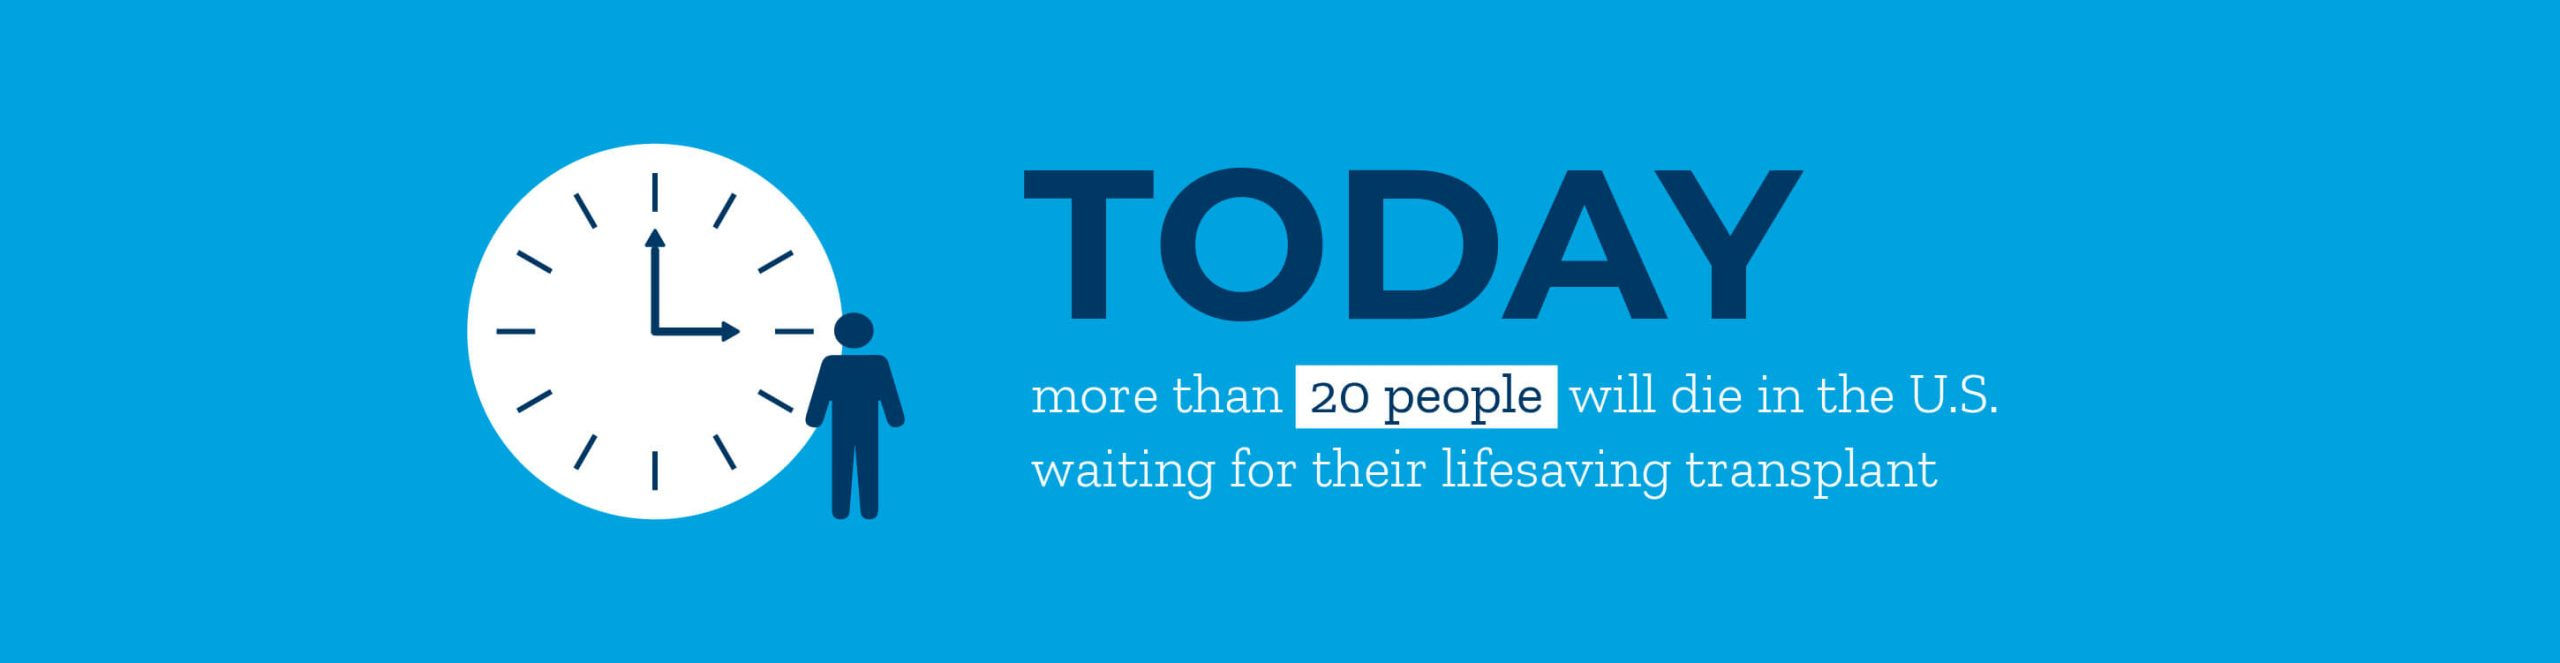 Infographic: today, more than 20 people will die in the United States waiting for their lifesaving transplant.